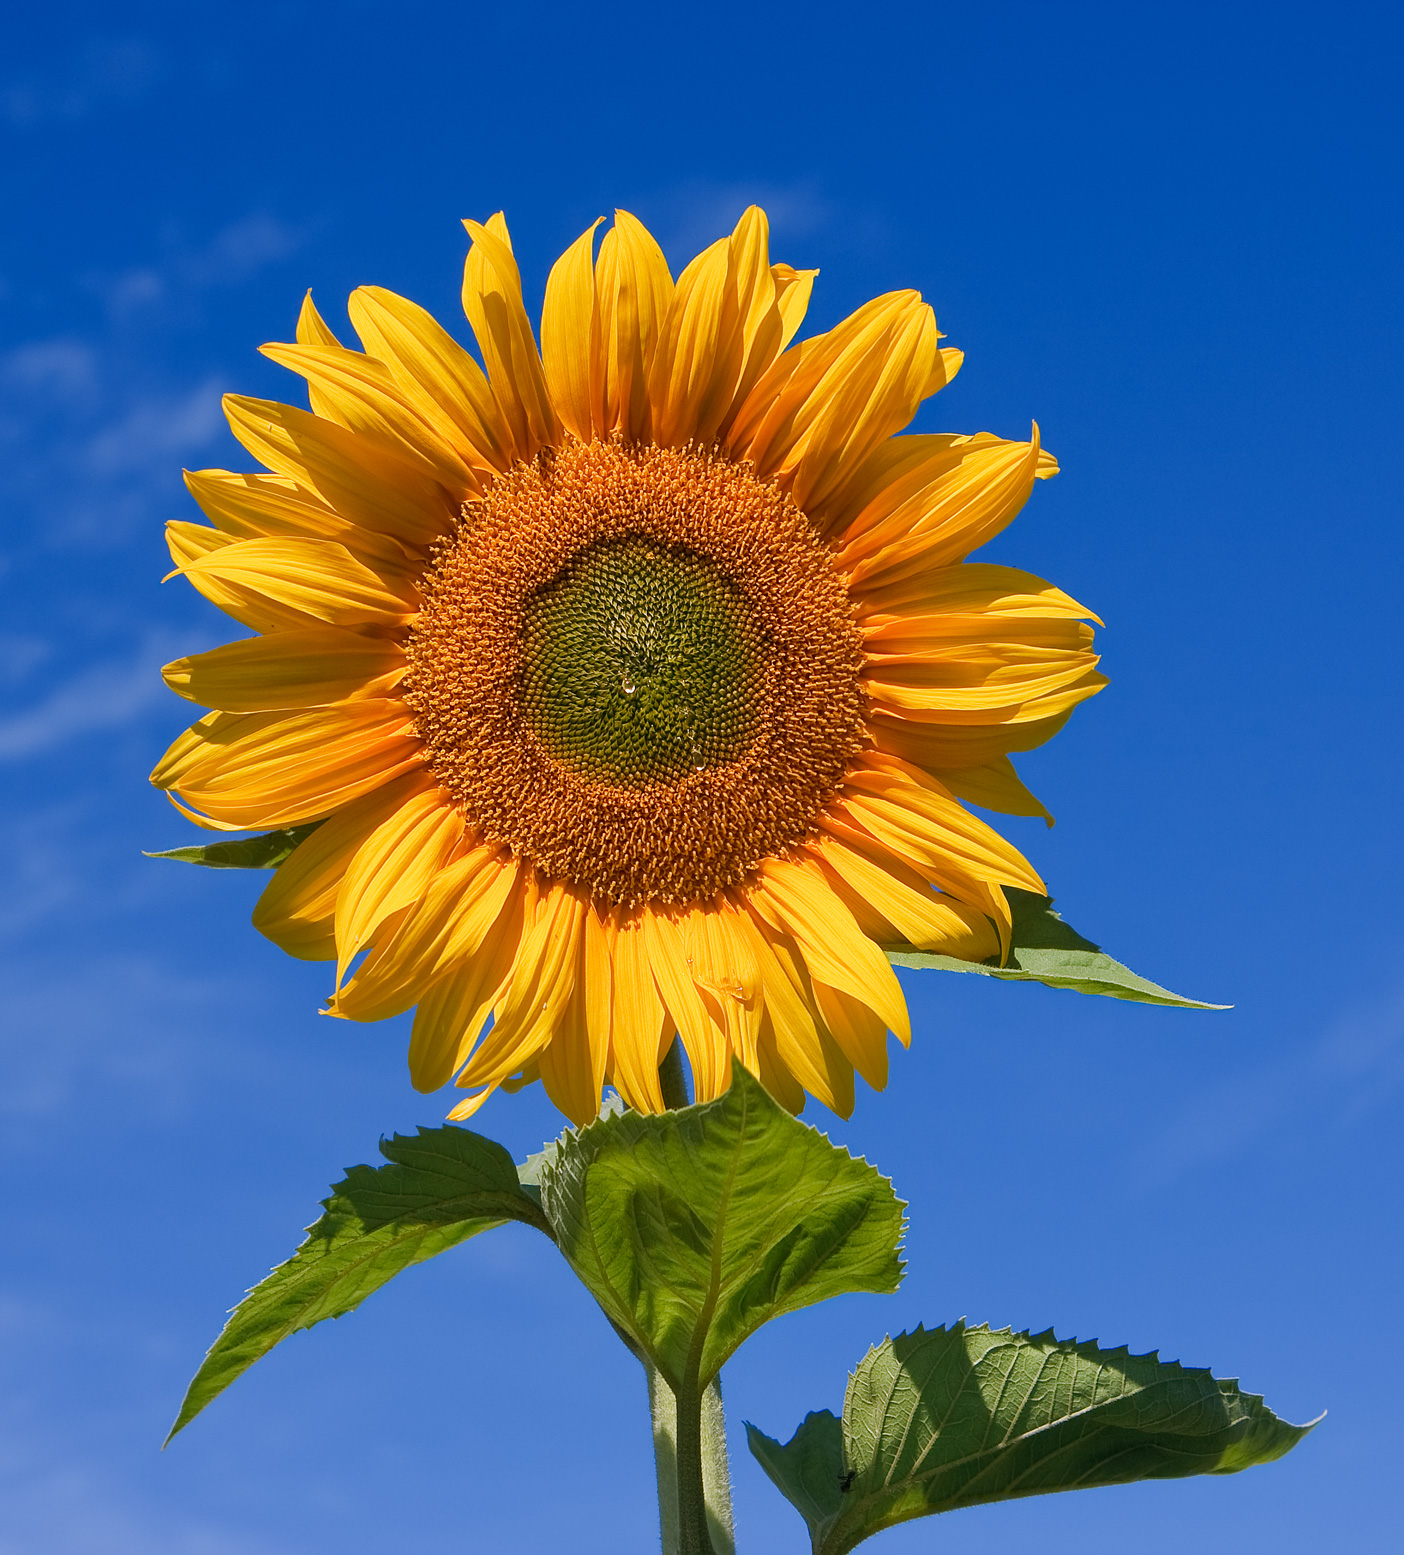 Helianthus - Wikipedia